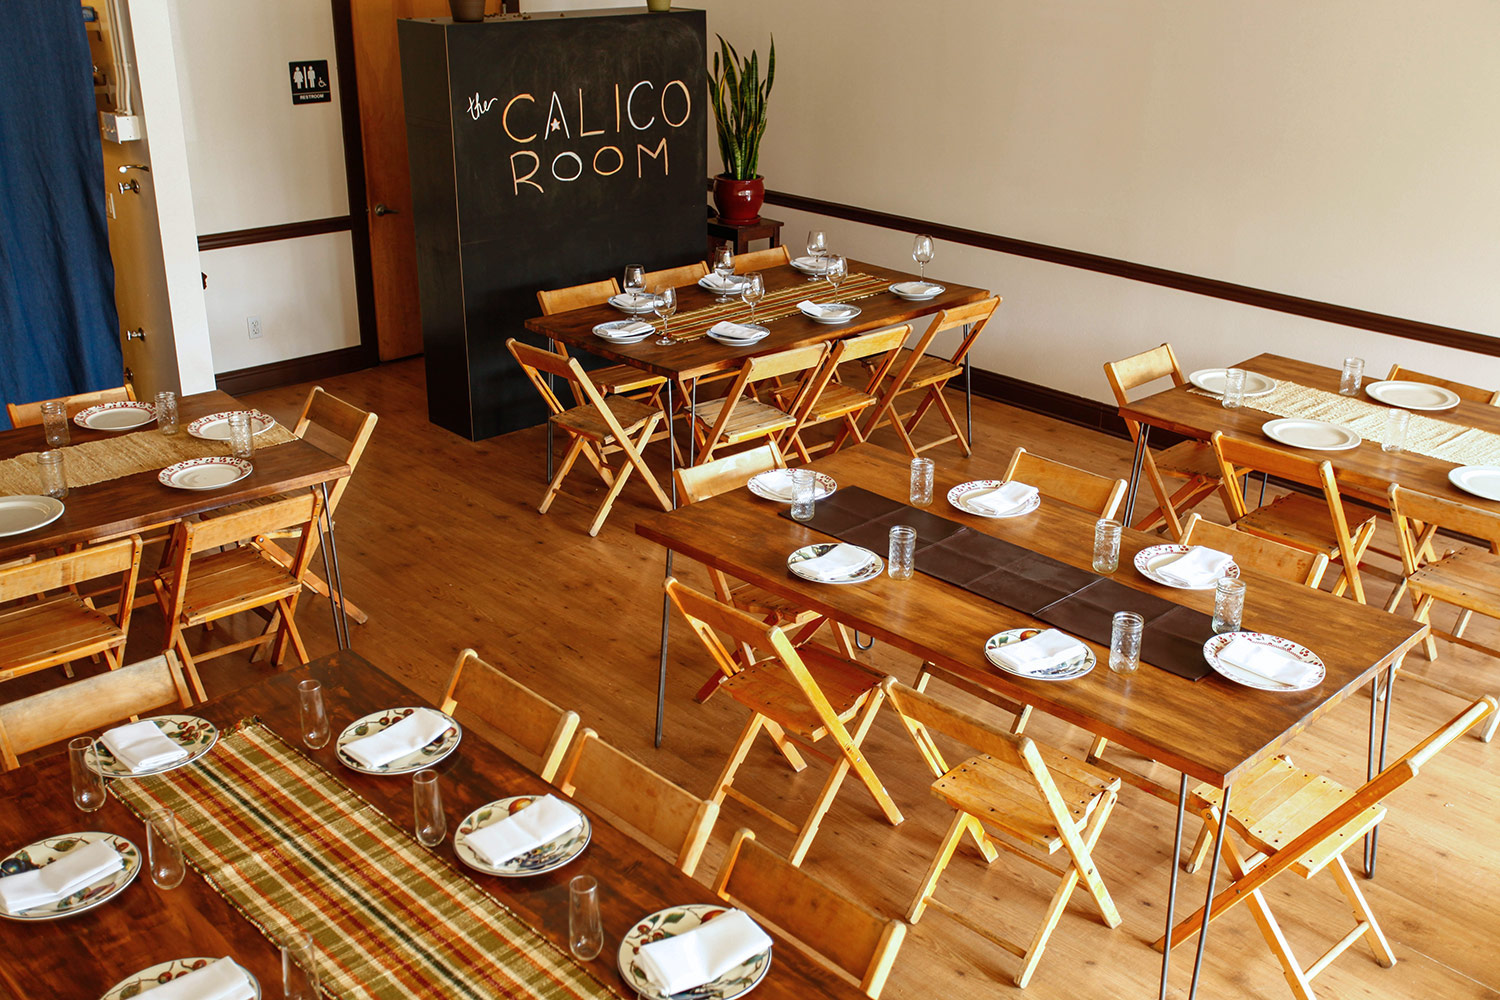 The Calico Room